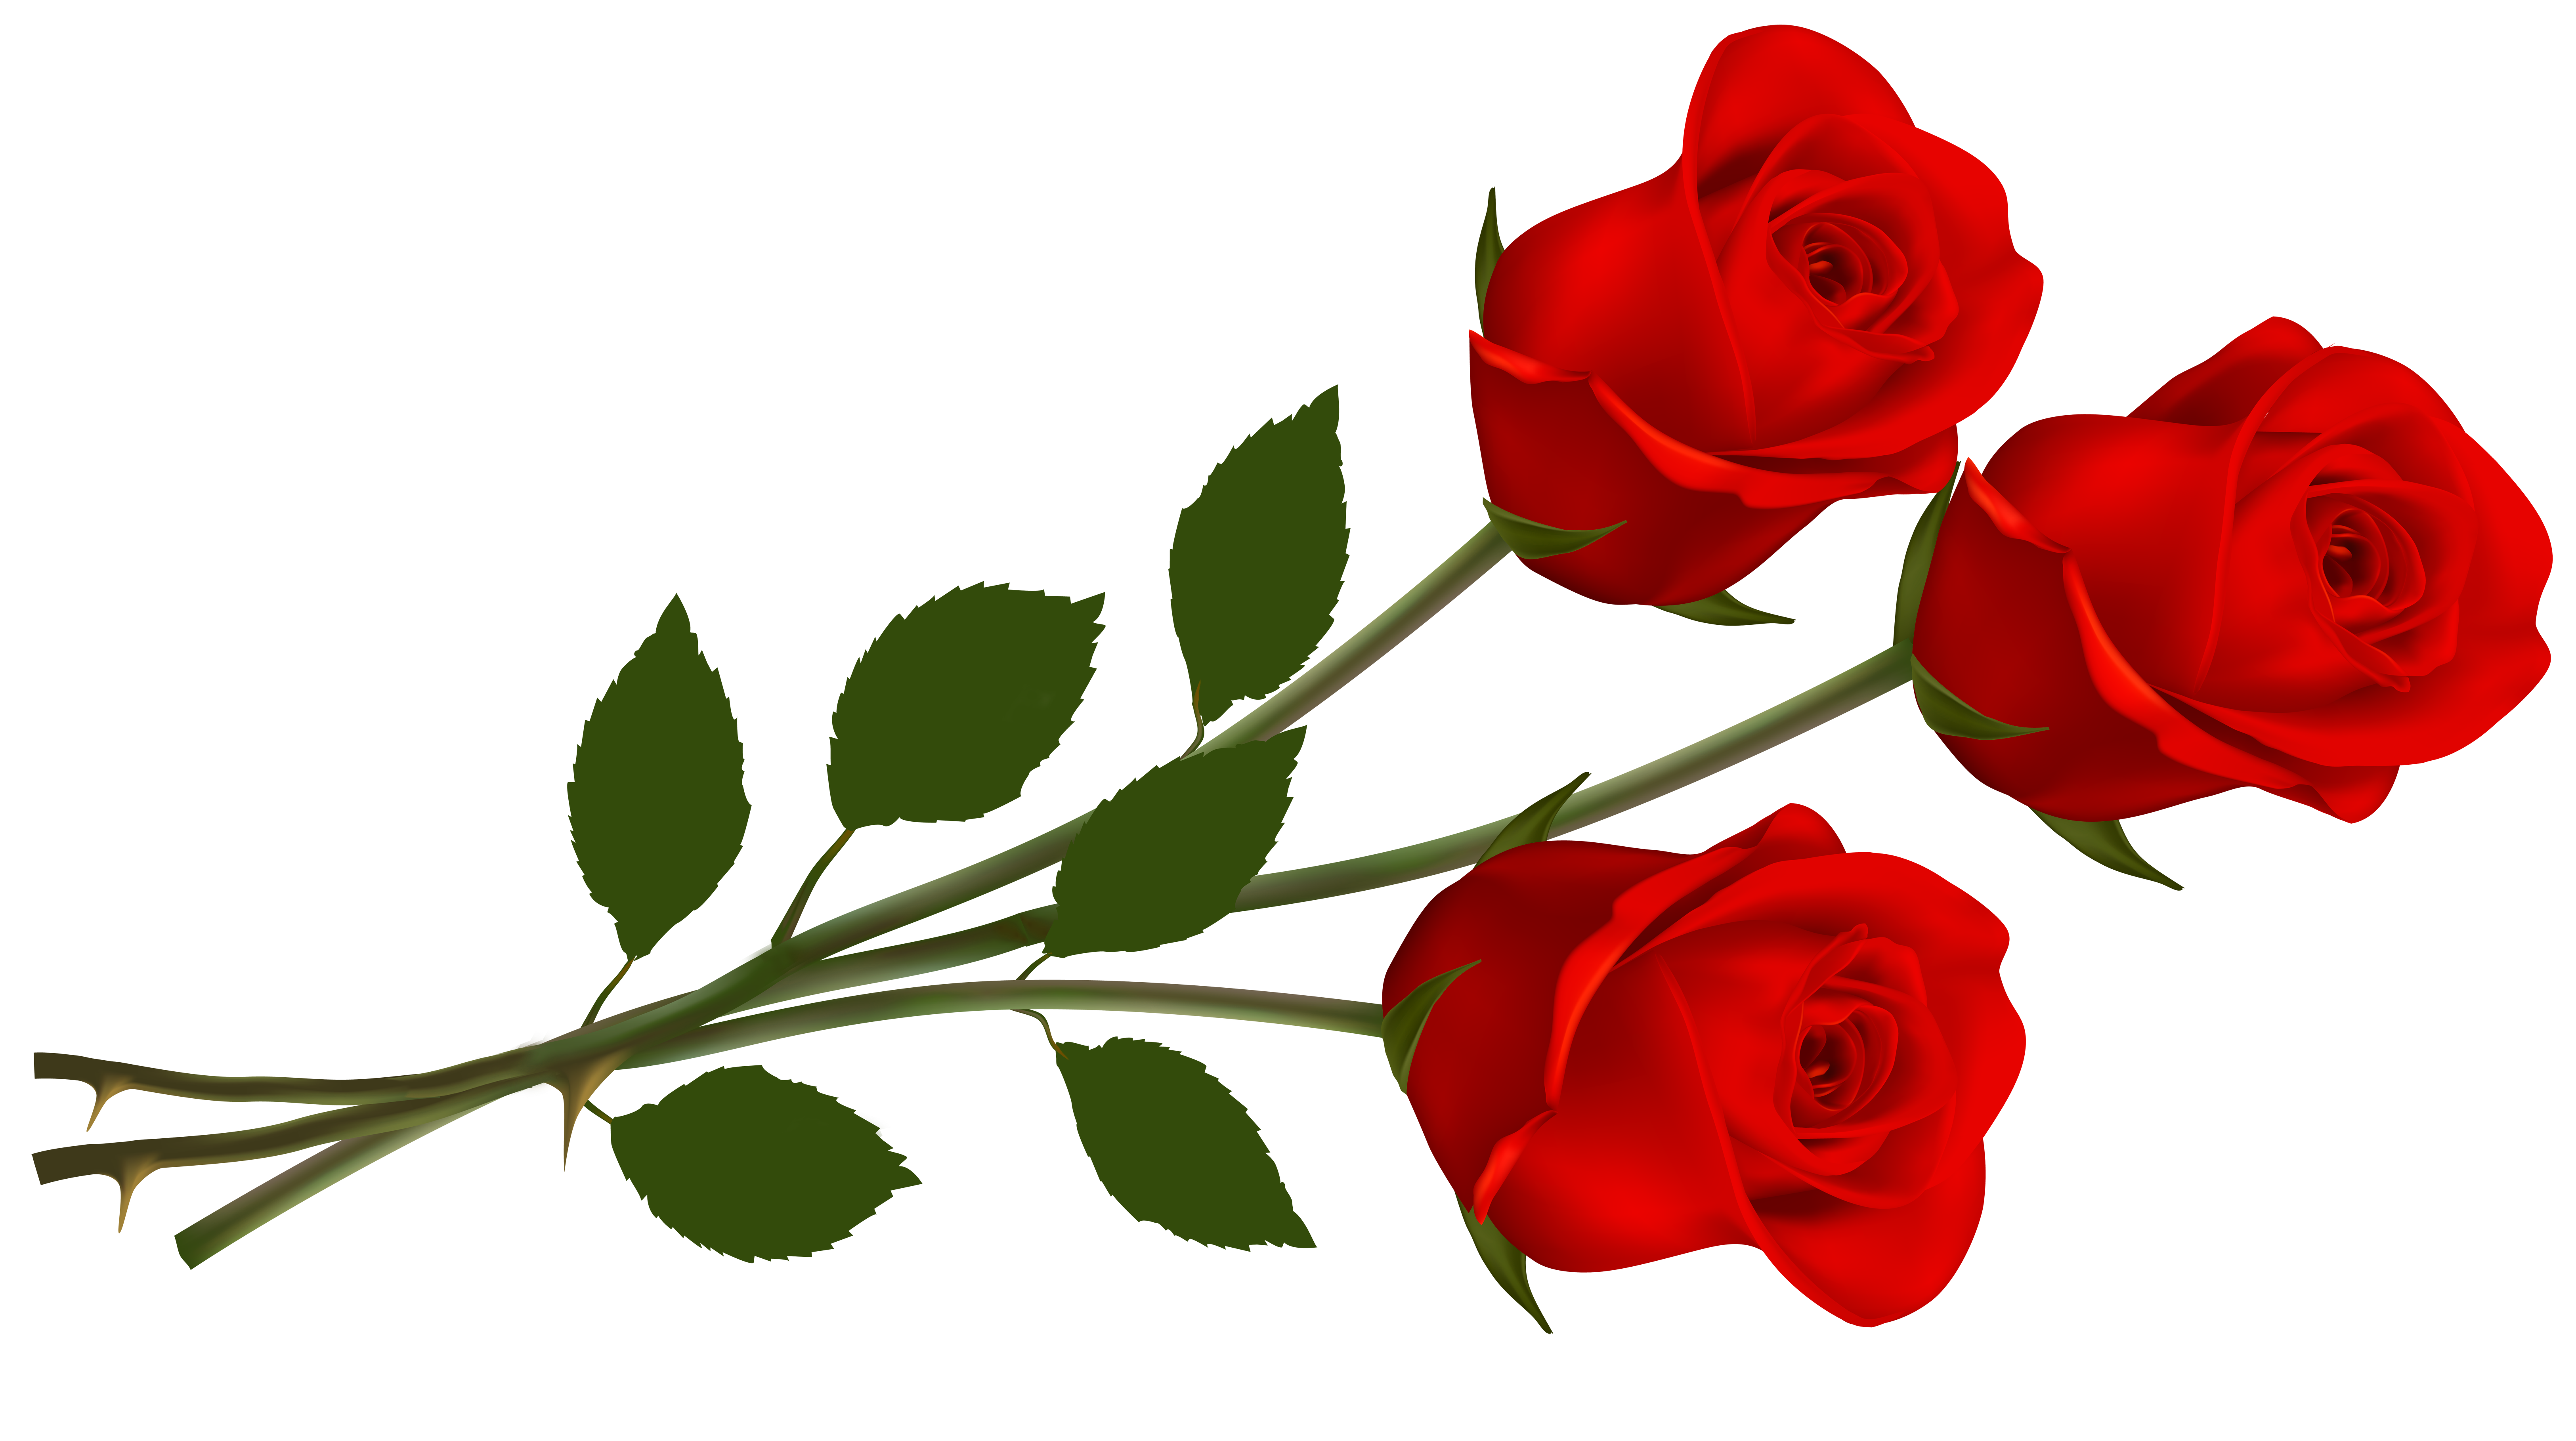 Single Red Rose Clipart - ClipartFest-Single red rose clipart - ClipartFest-15